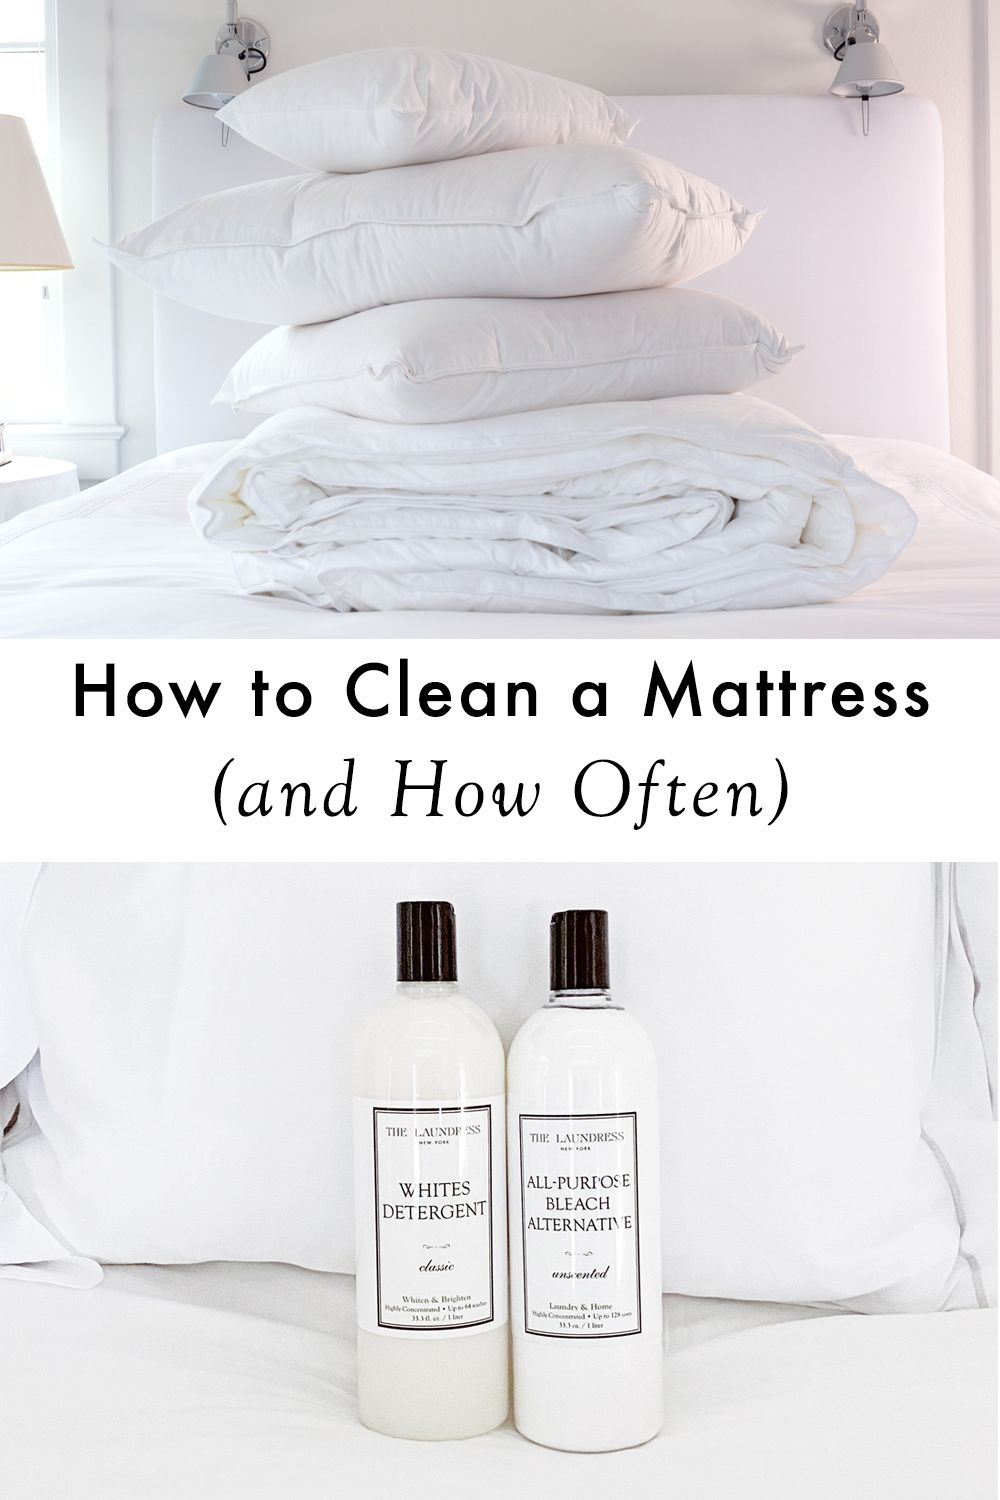 How to Clean Your Mattress  Mattress cleaning, Cleaning, Diy